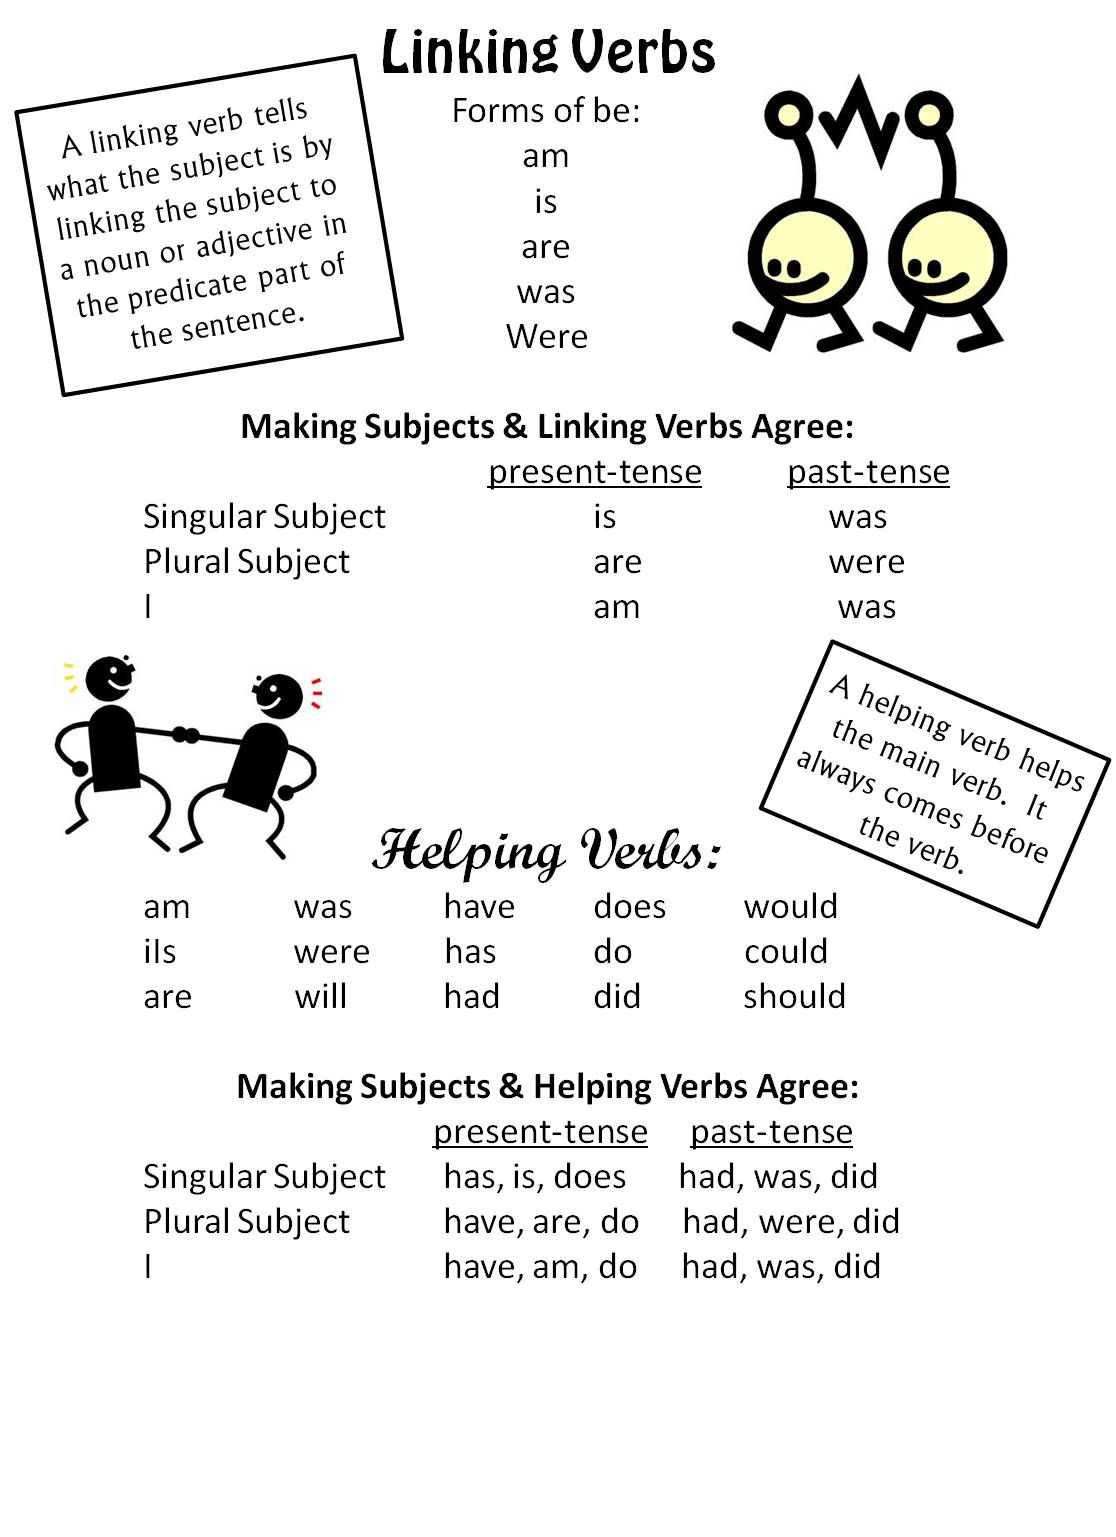 Linking Verbs Worksheets 5th Grade In